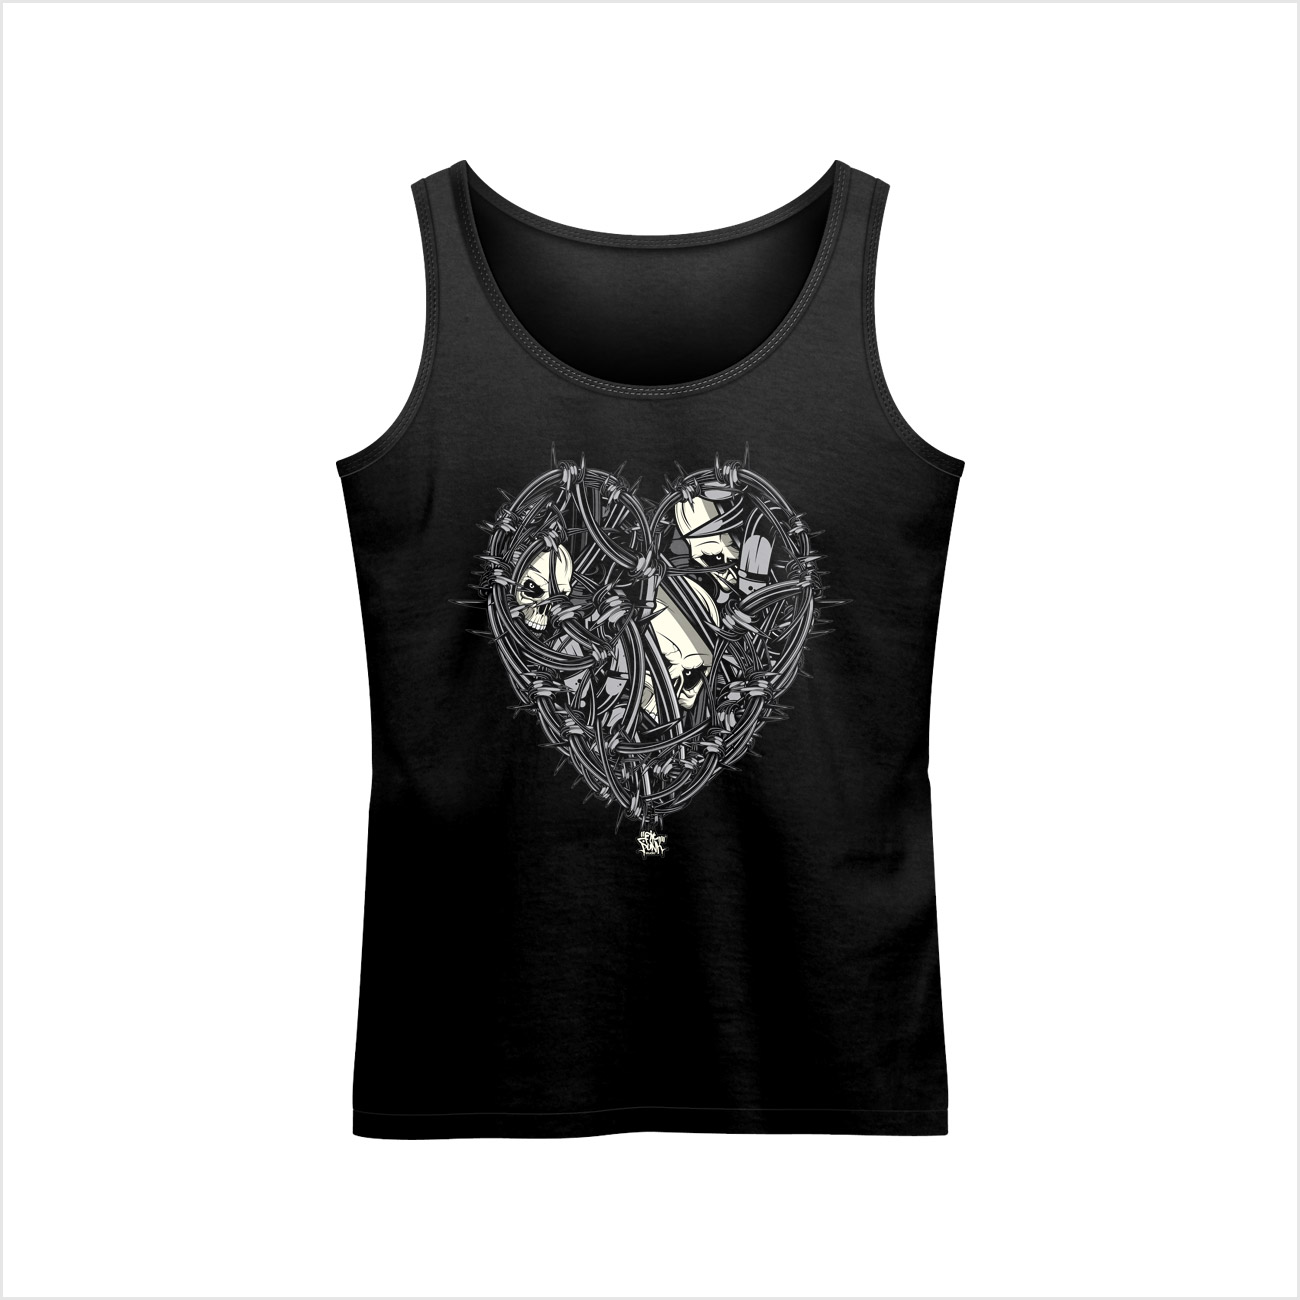 fat-punk-studio-heart-vest-top-black-01